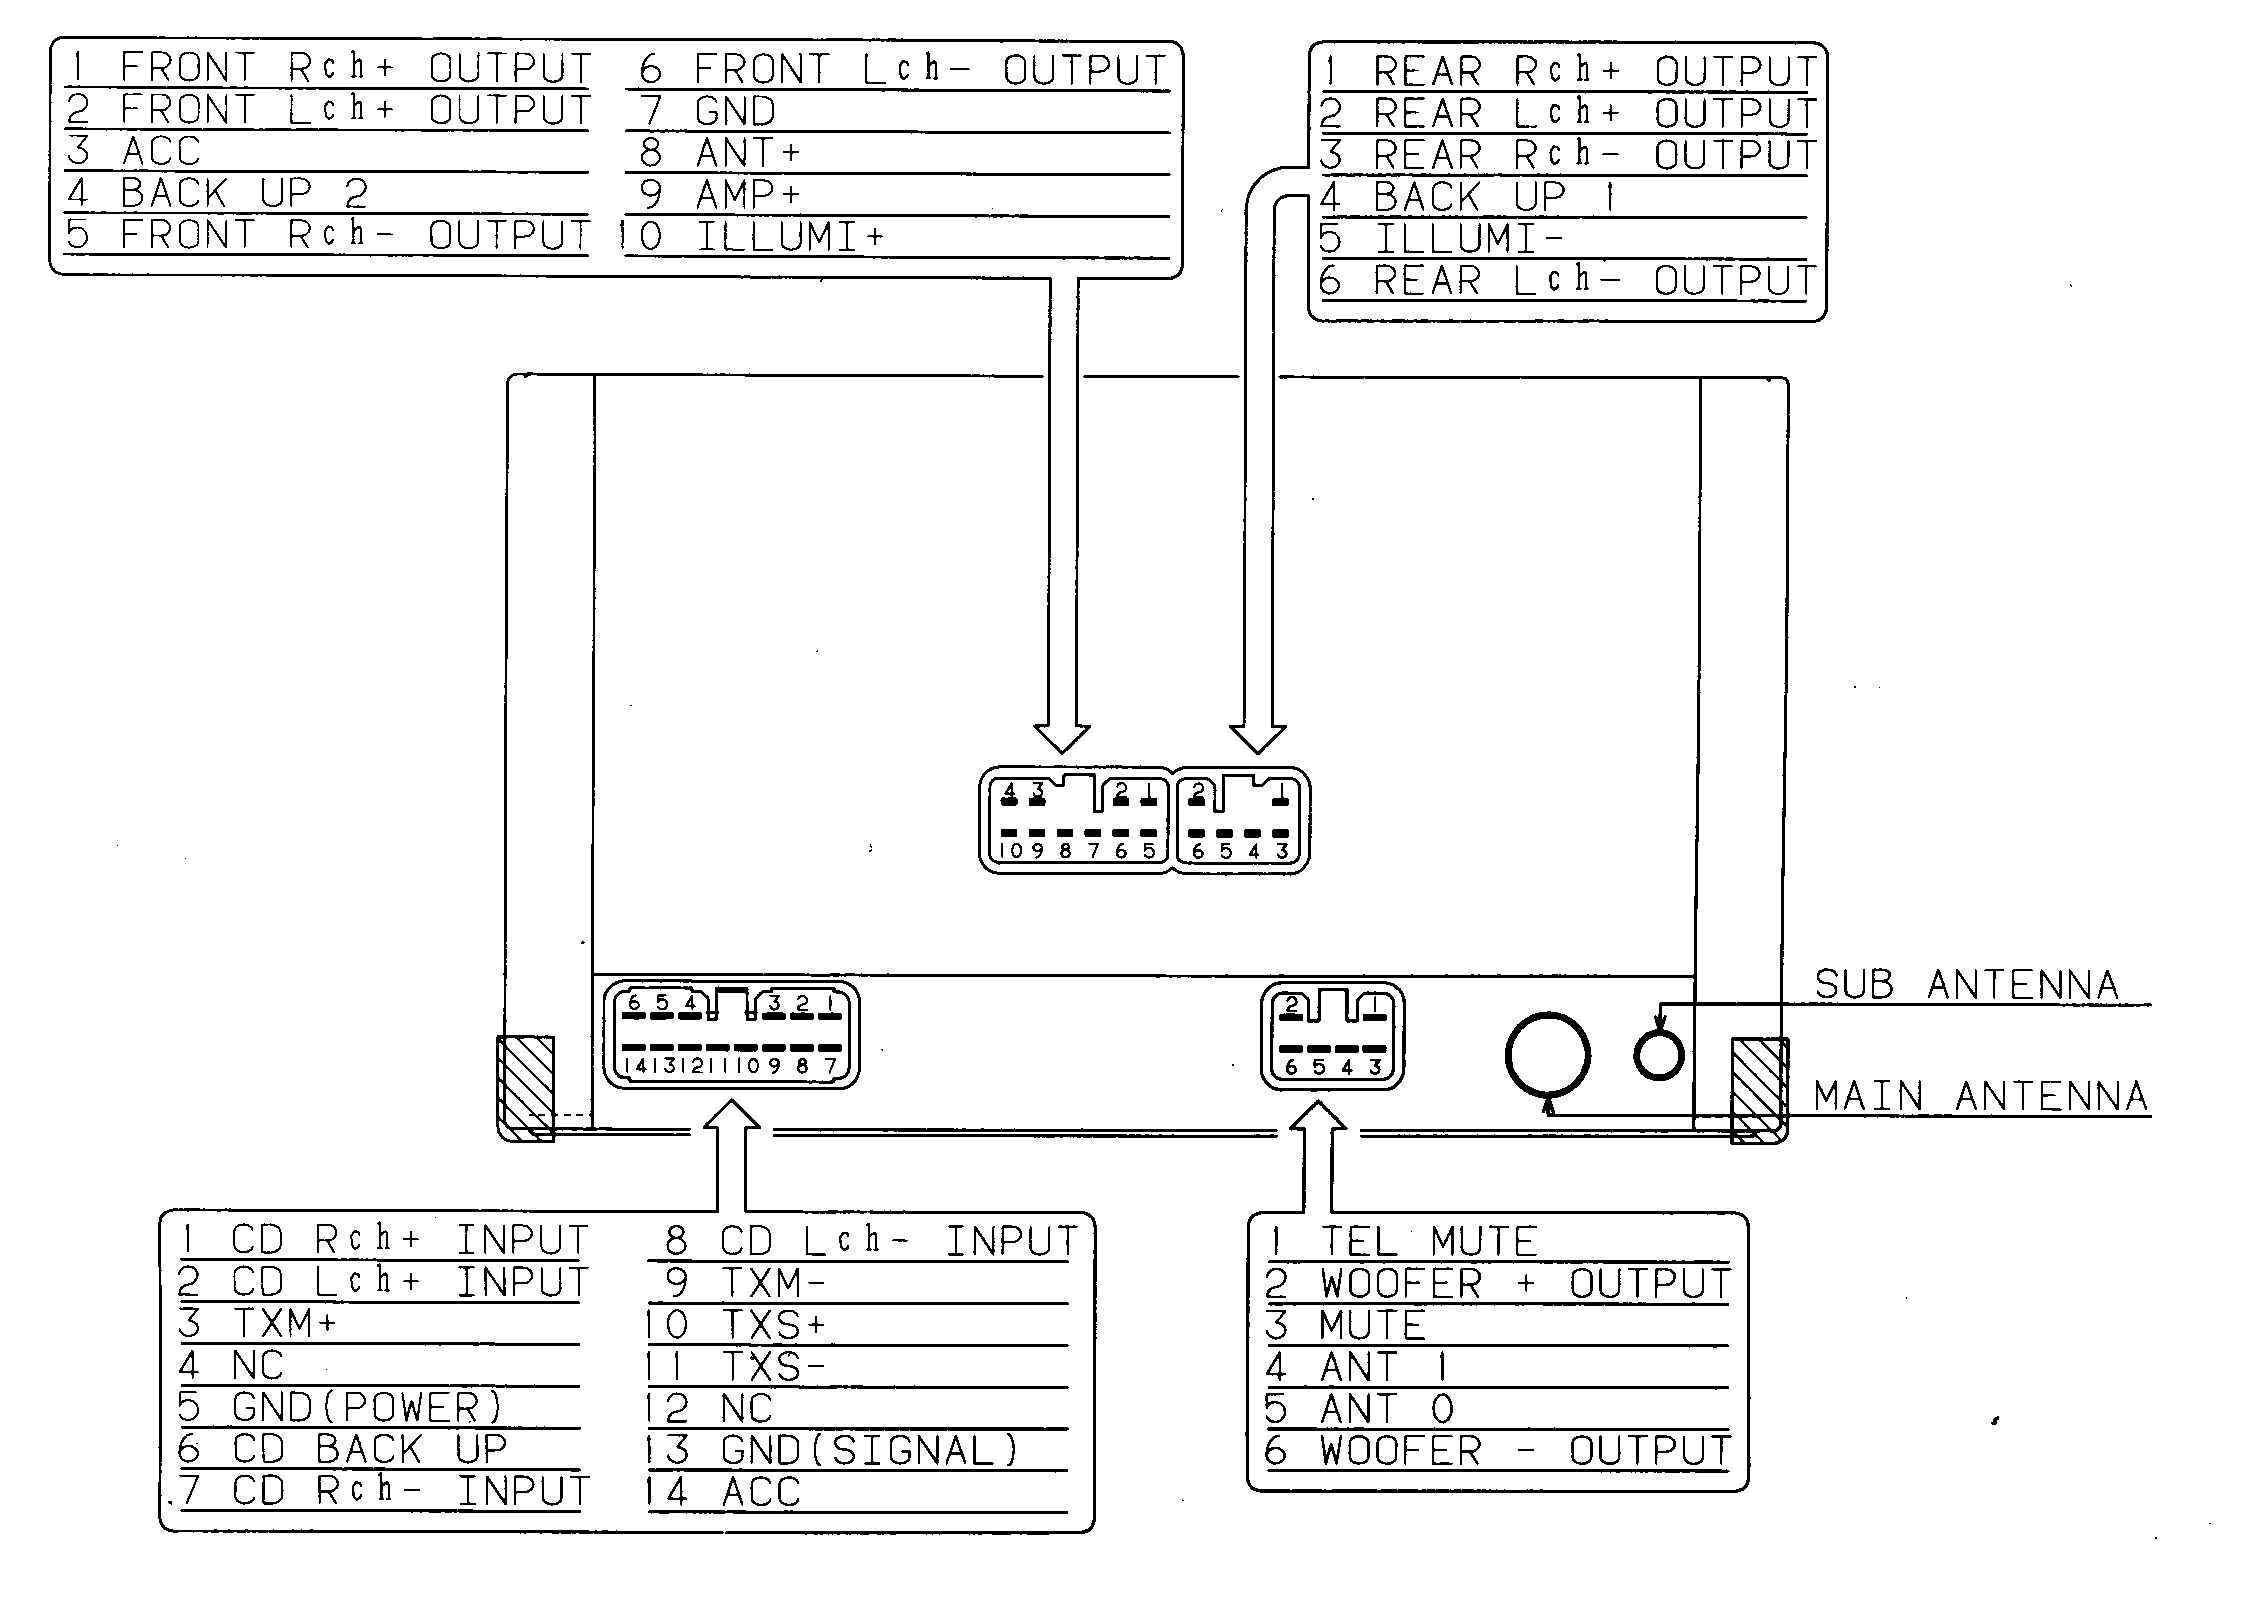 Lexus car stereo wiring diagram harness pinout connector wire 1996 jeep grand cherokee car stereo radio wiring diagram wiring 2002 jeep cherokee radio wiring diagram at sewacar.co